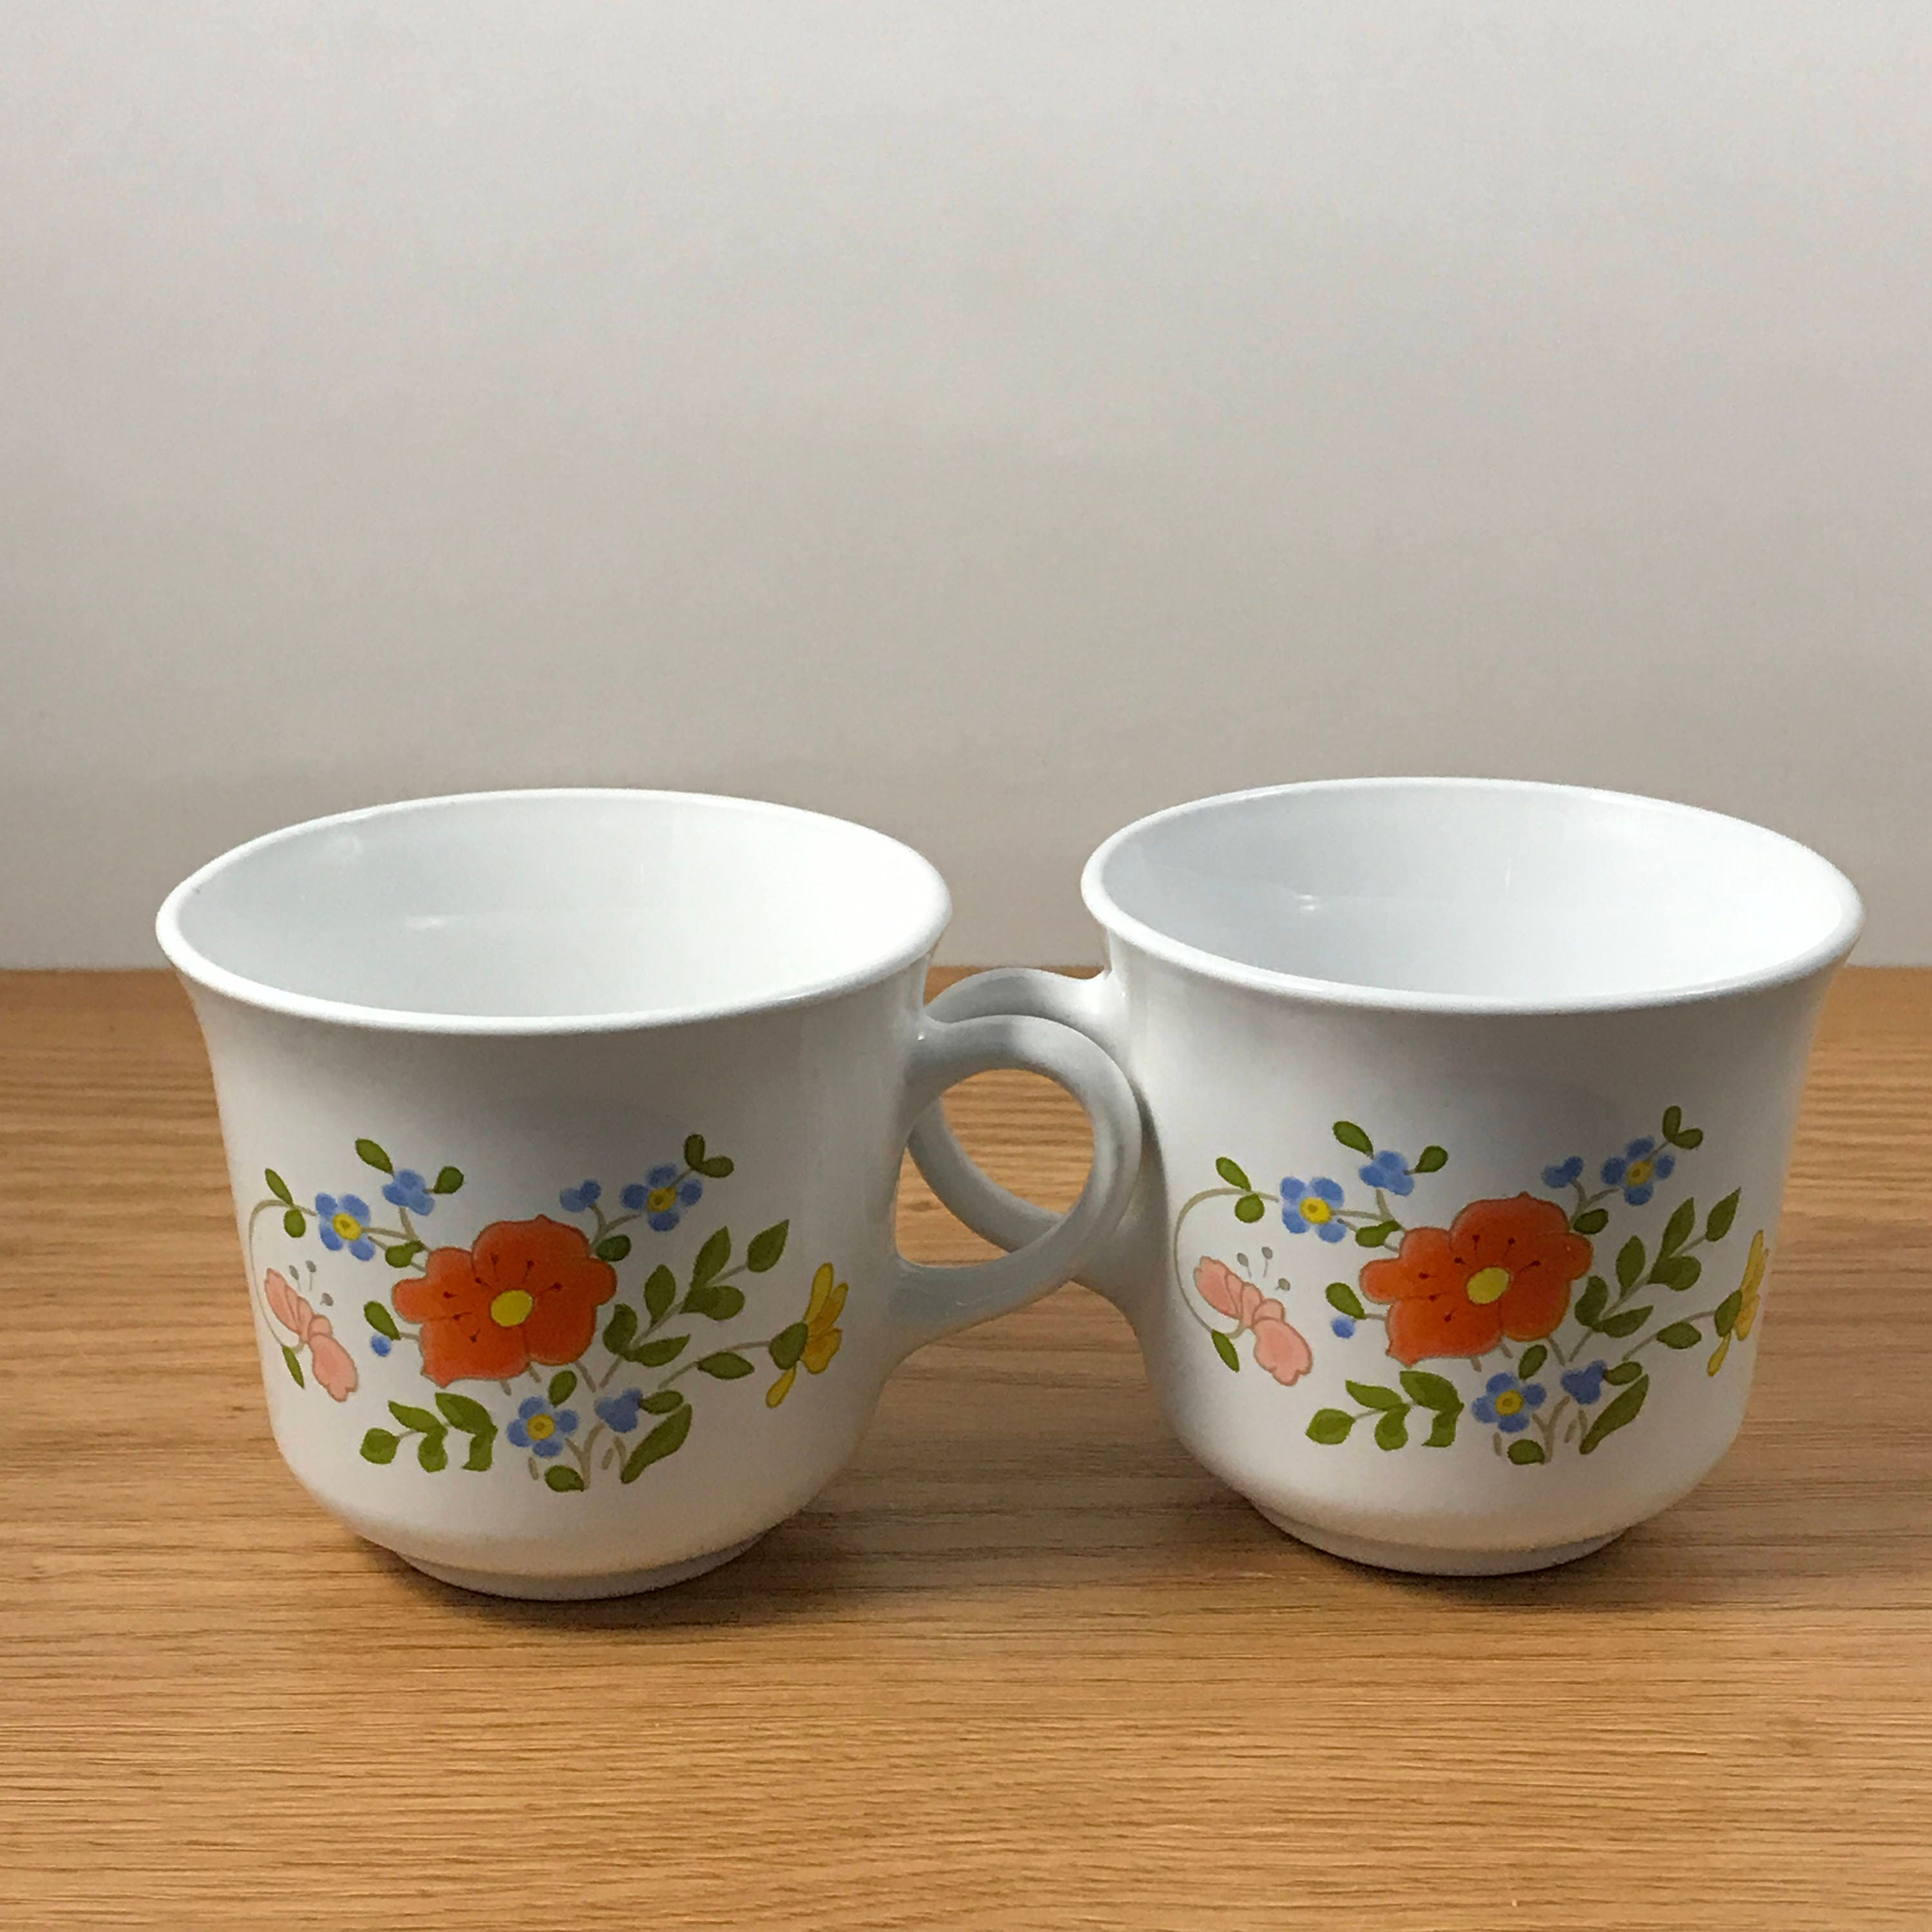 2 Corning Ware Wildflower Cups Corelle Pyrex Replacement Mugs